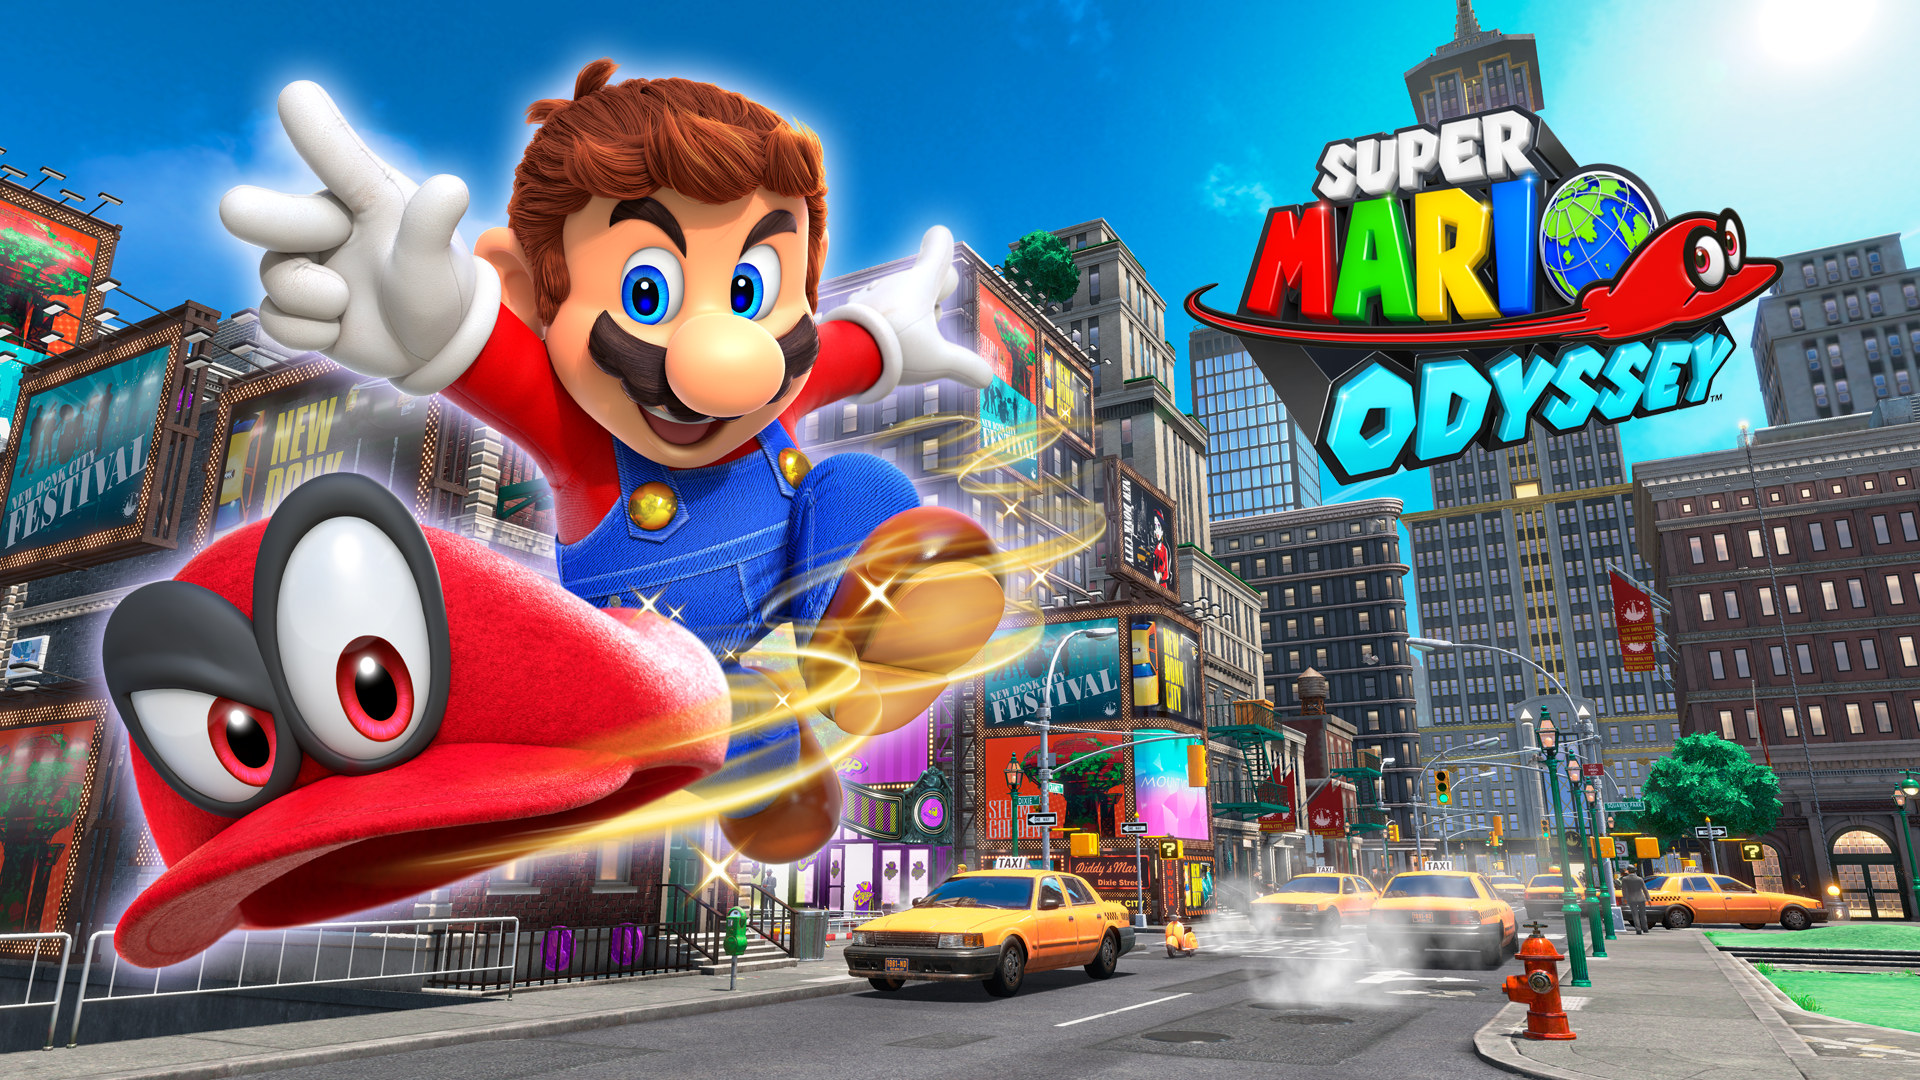 New Details On The Super Mario Bros Animated Movie Collider